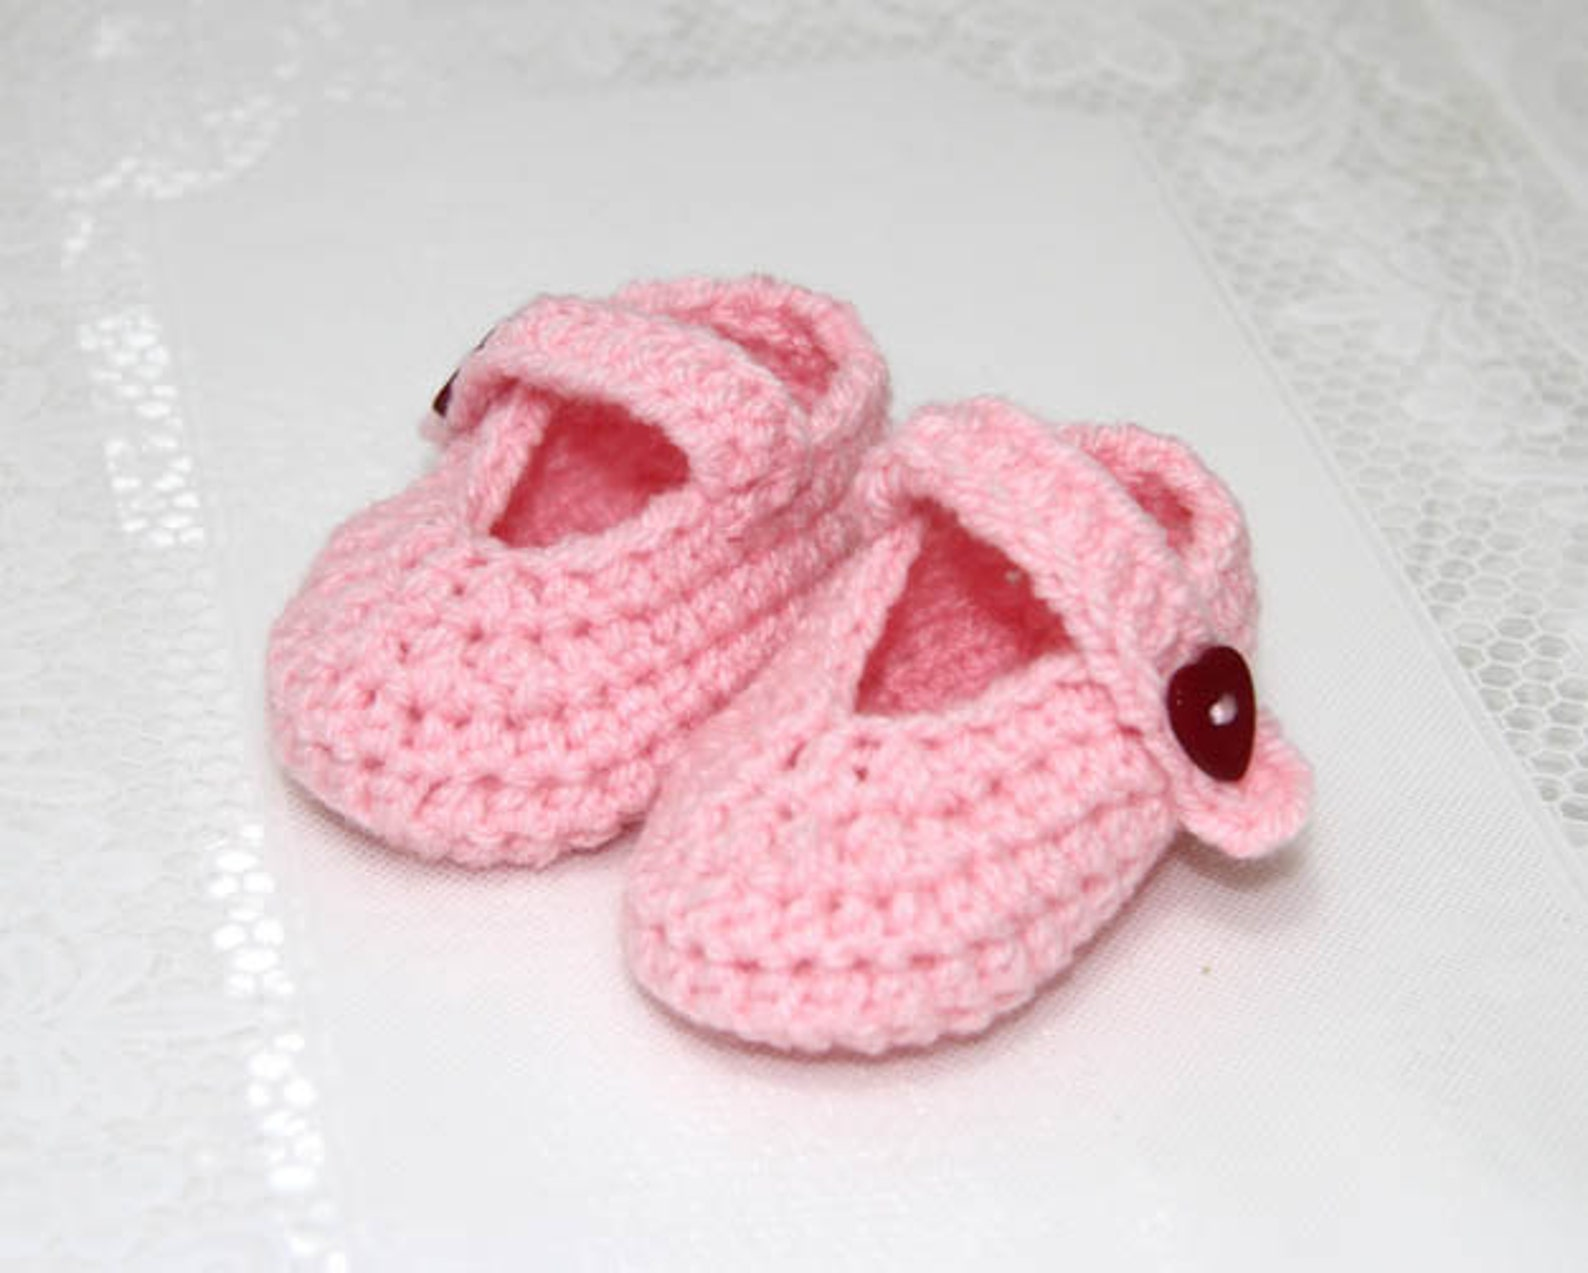 pink baby ballets shoes with heart shaped buttons